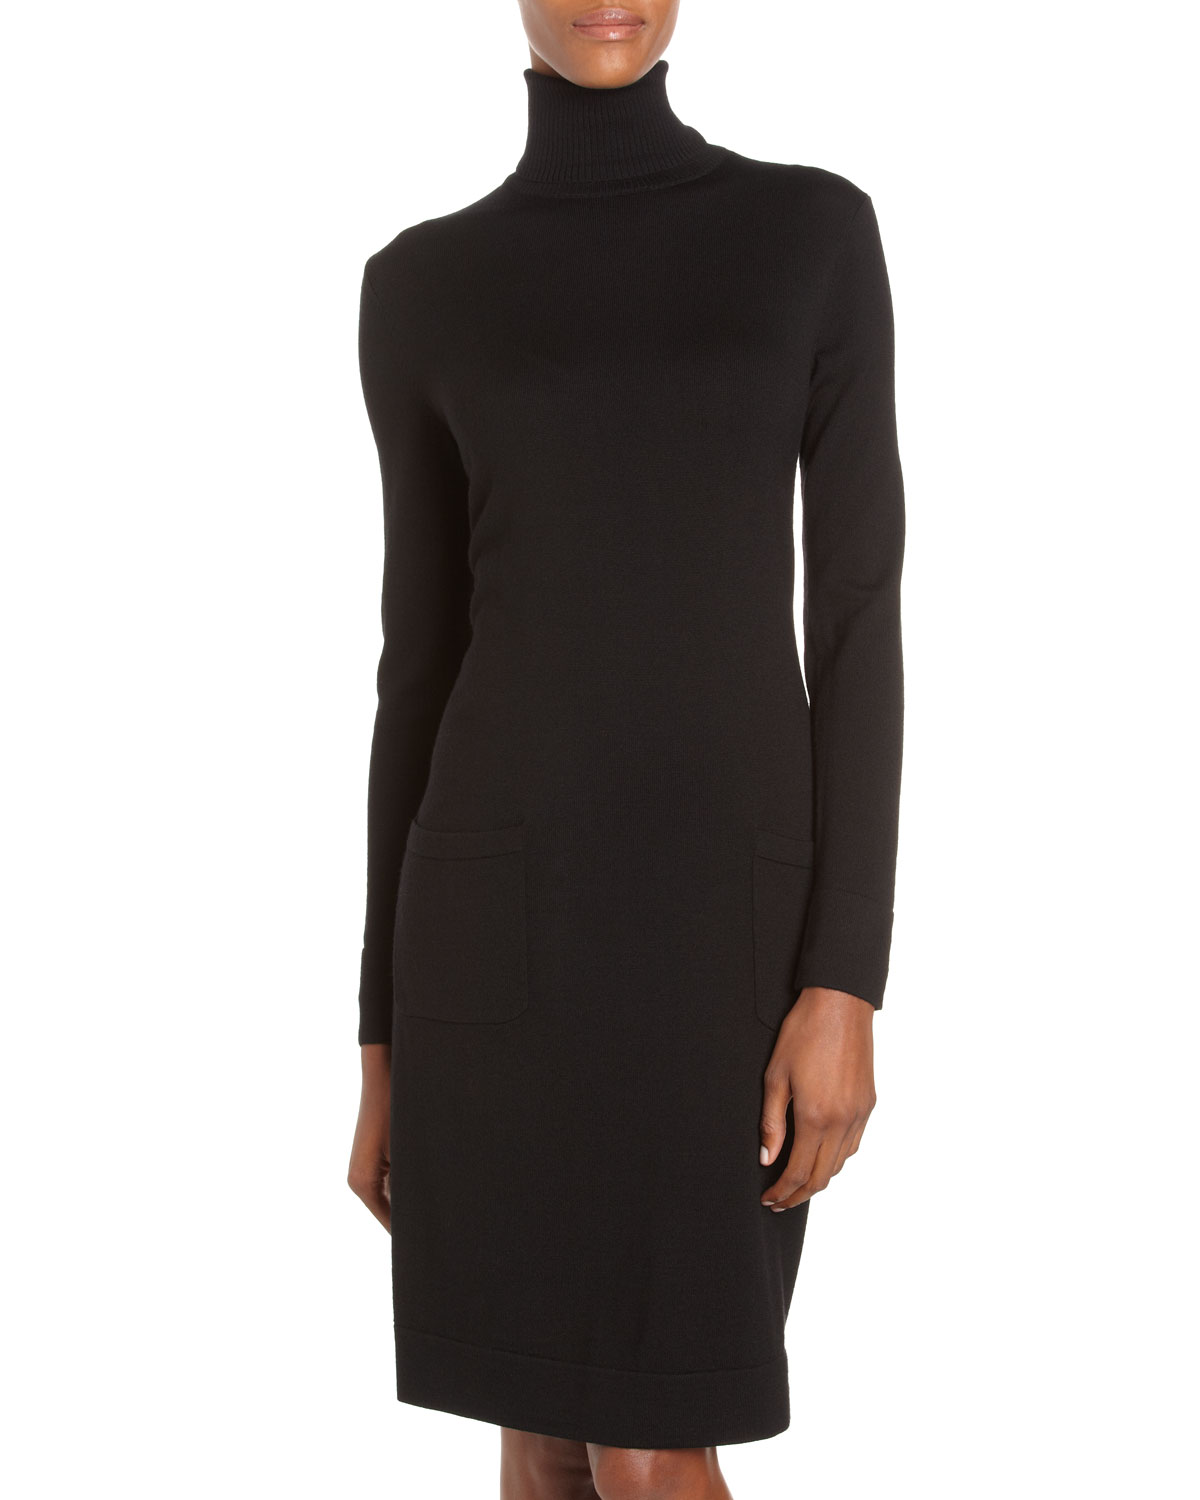 Lafayette 148 New York Turtleneck Sweater Dress Black in Black | Lyst